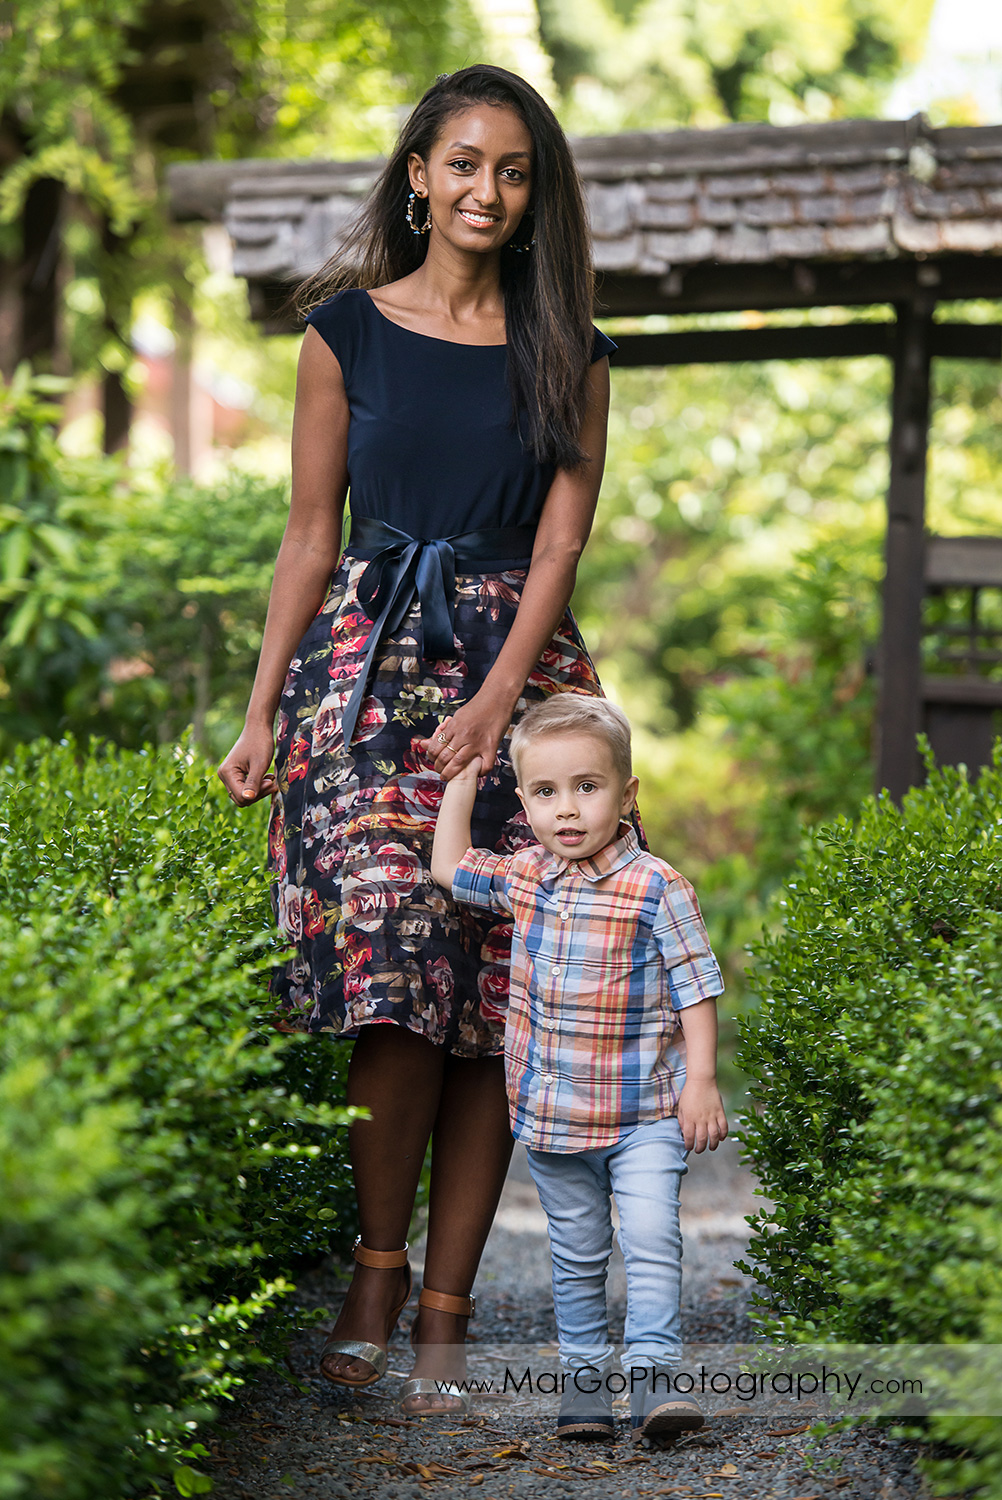 woman in navy blue dress and little boy walking among greenery in Shinn Historical Park and Arboretum in Fremont